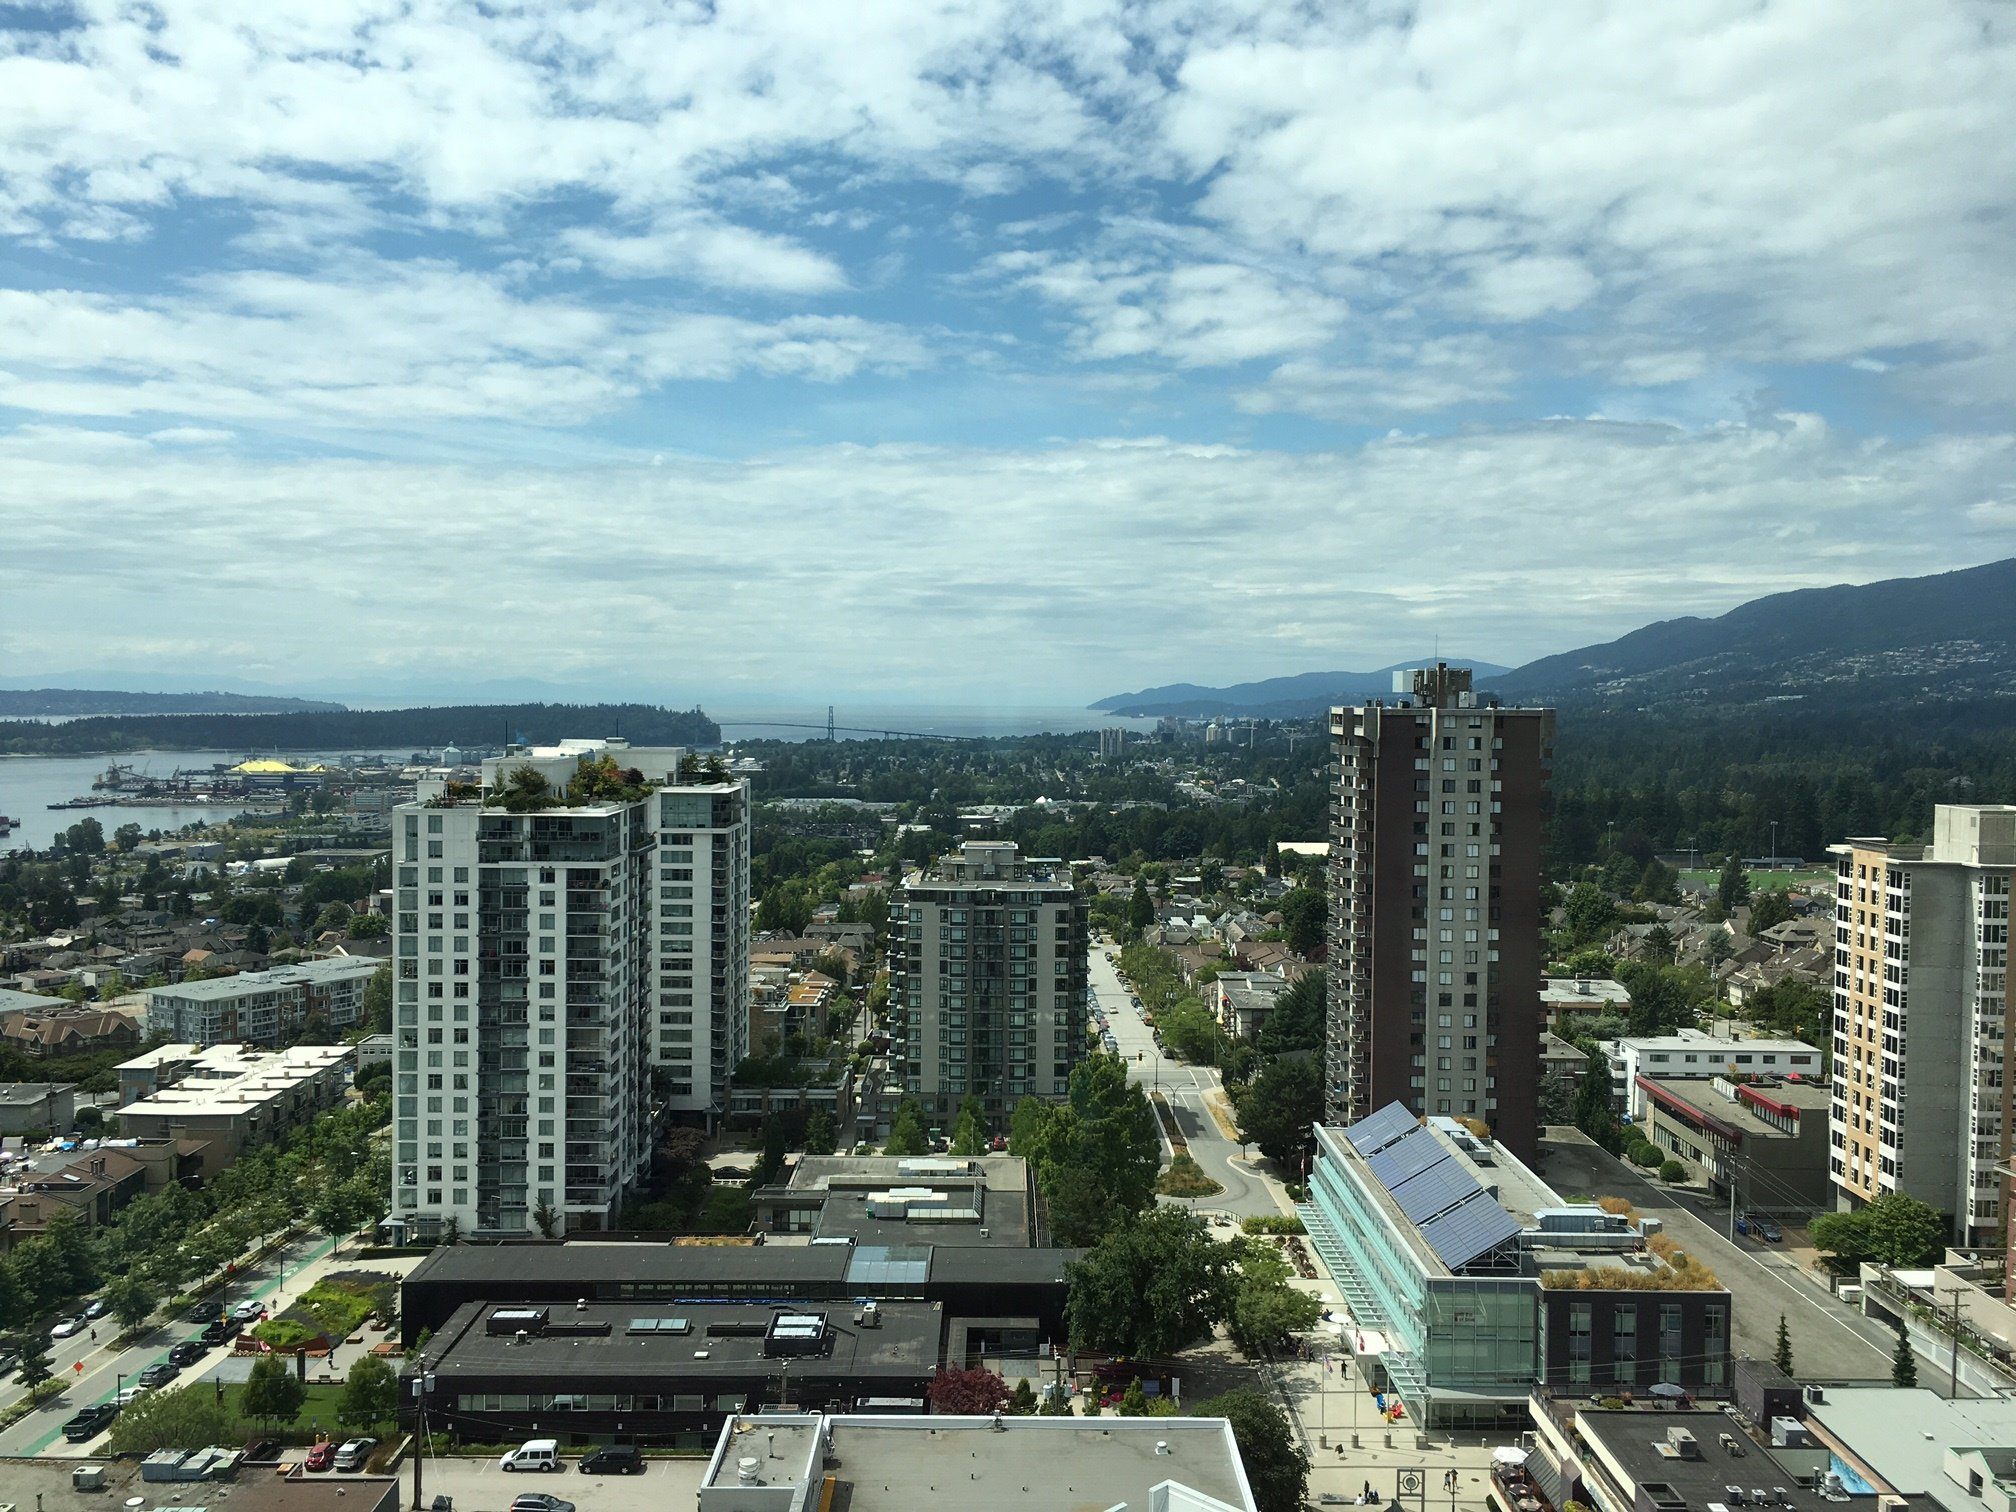 Photo 8: Photos: 112 E.13th Street in North Vancouver: Central Lonsdale Condo for rent